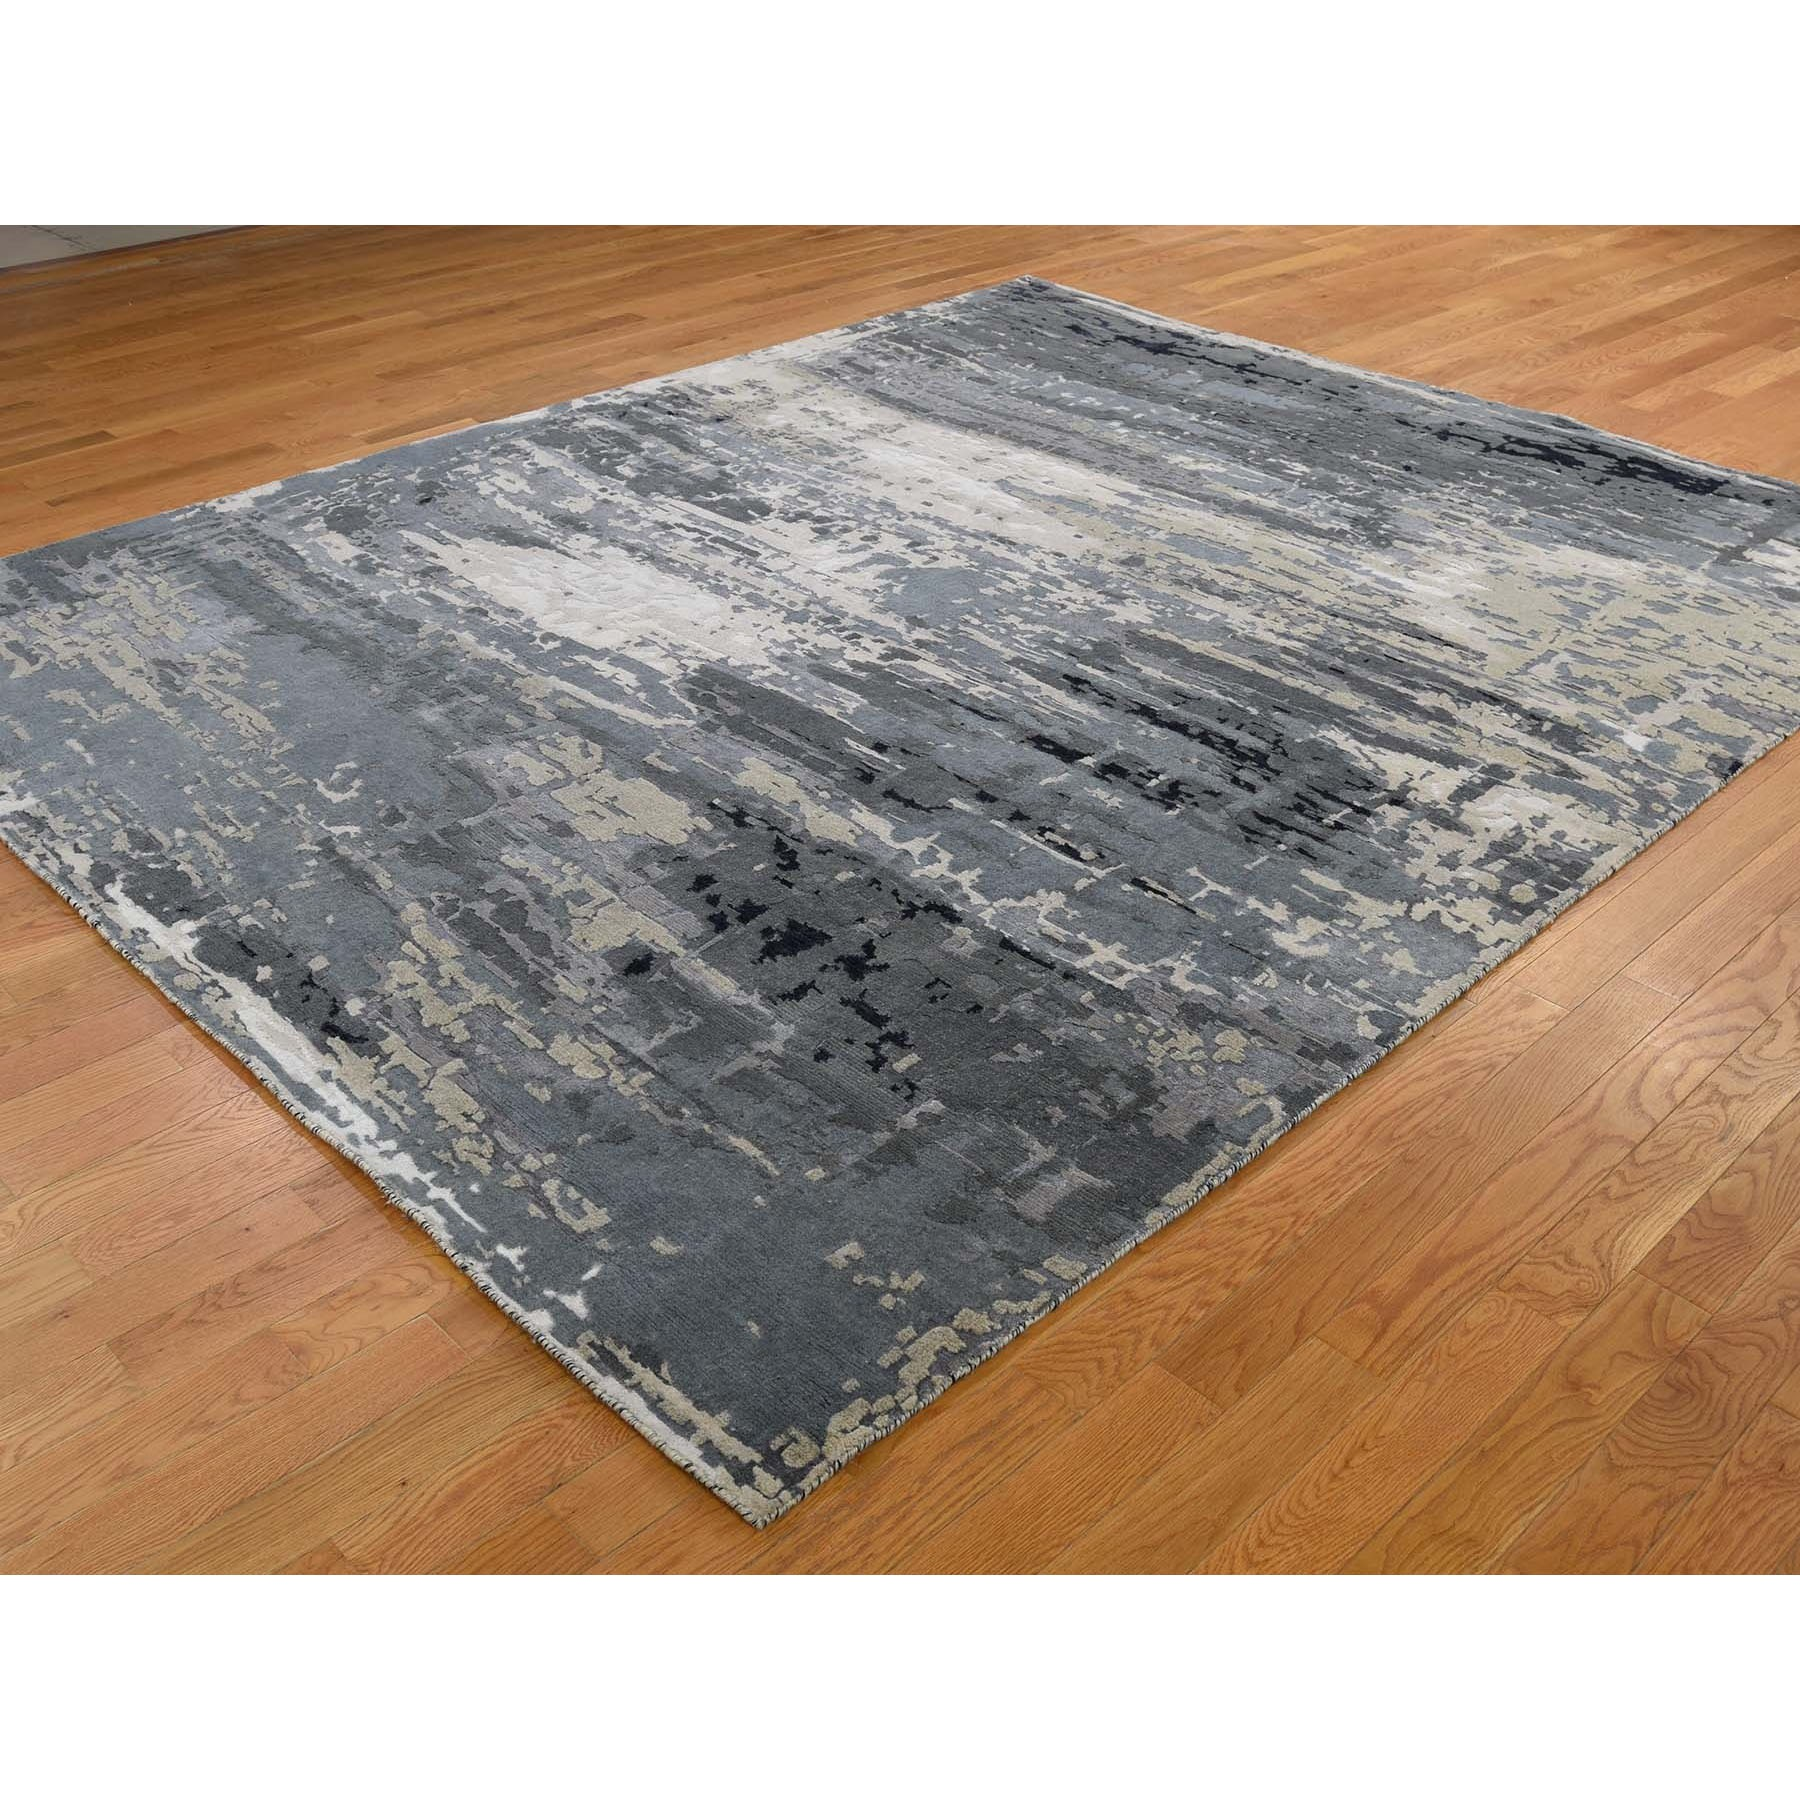 """8'1""""x10' Hi-Low Pile Abstract Design Wool And Silk Hand-Knotted Oriental Rug"""